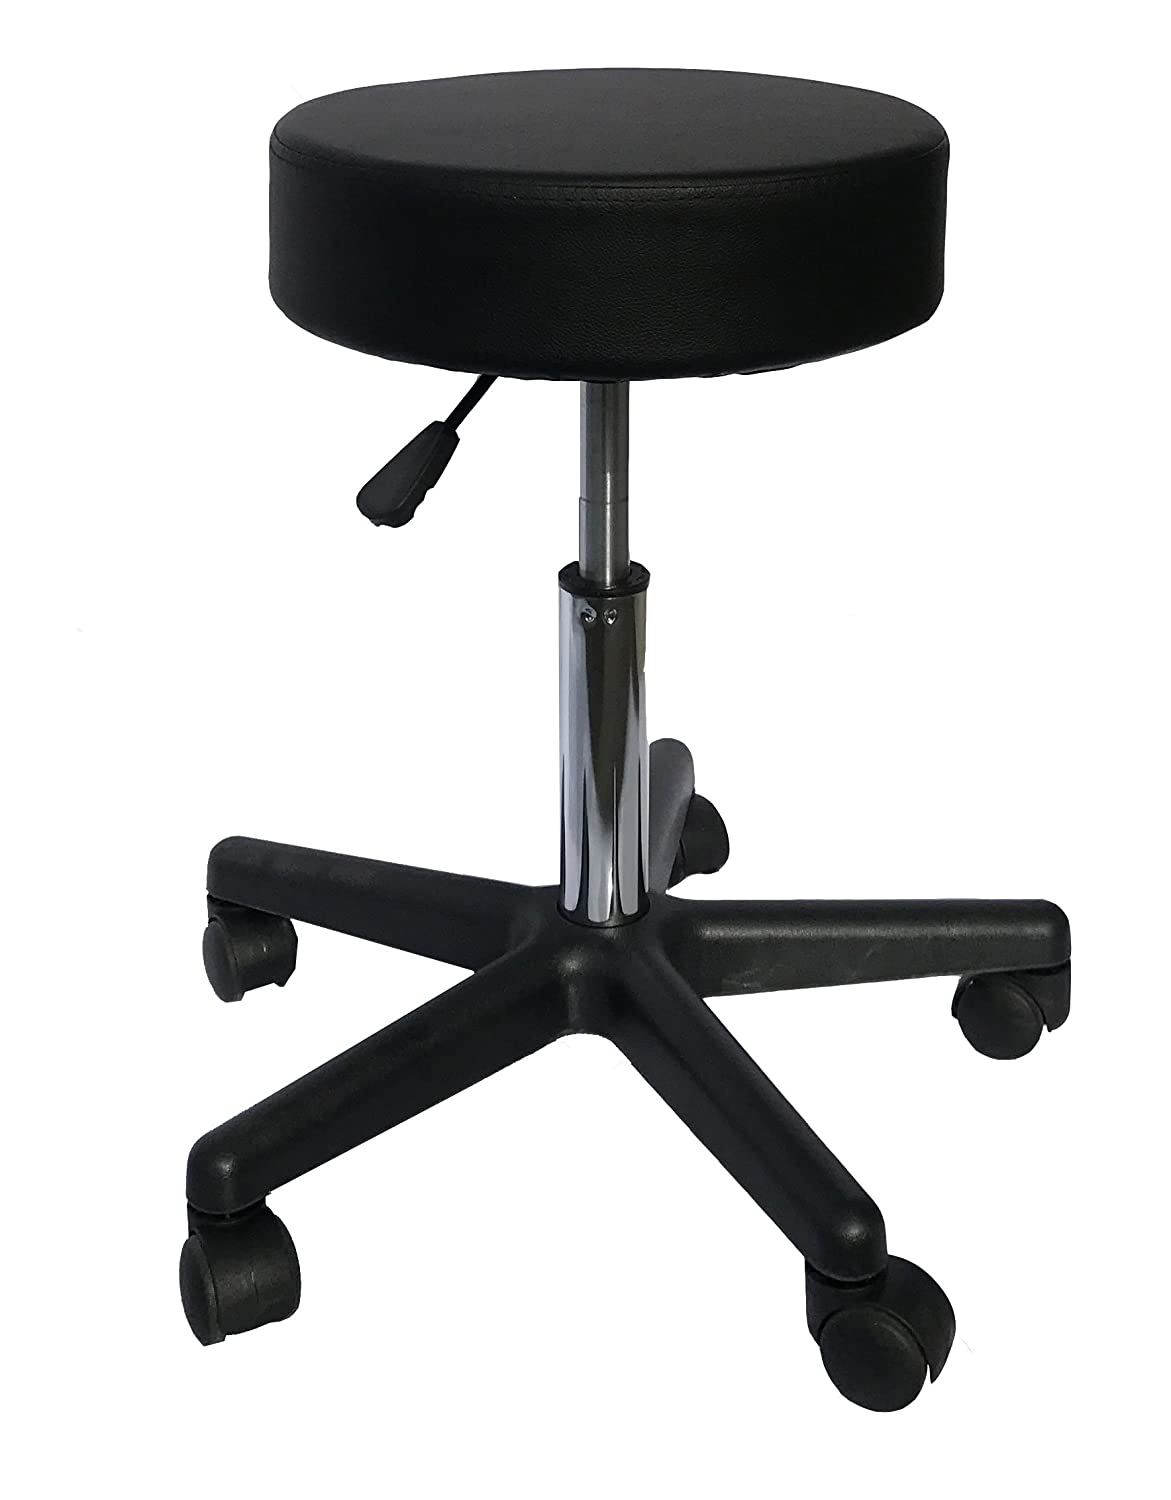 Deluxe Round Height Hydraulic Adjustable Rolling Stool, Great for Spa Facial Massage Tattoo Doctor Technician Office or Home use (Black) Angel Canada